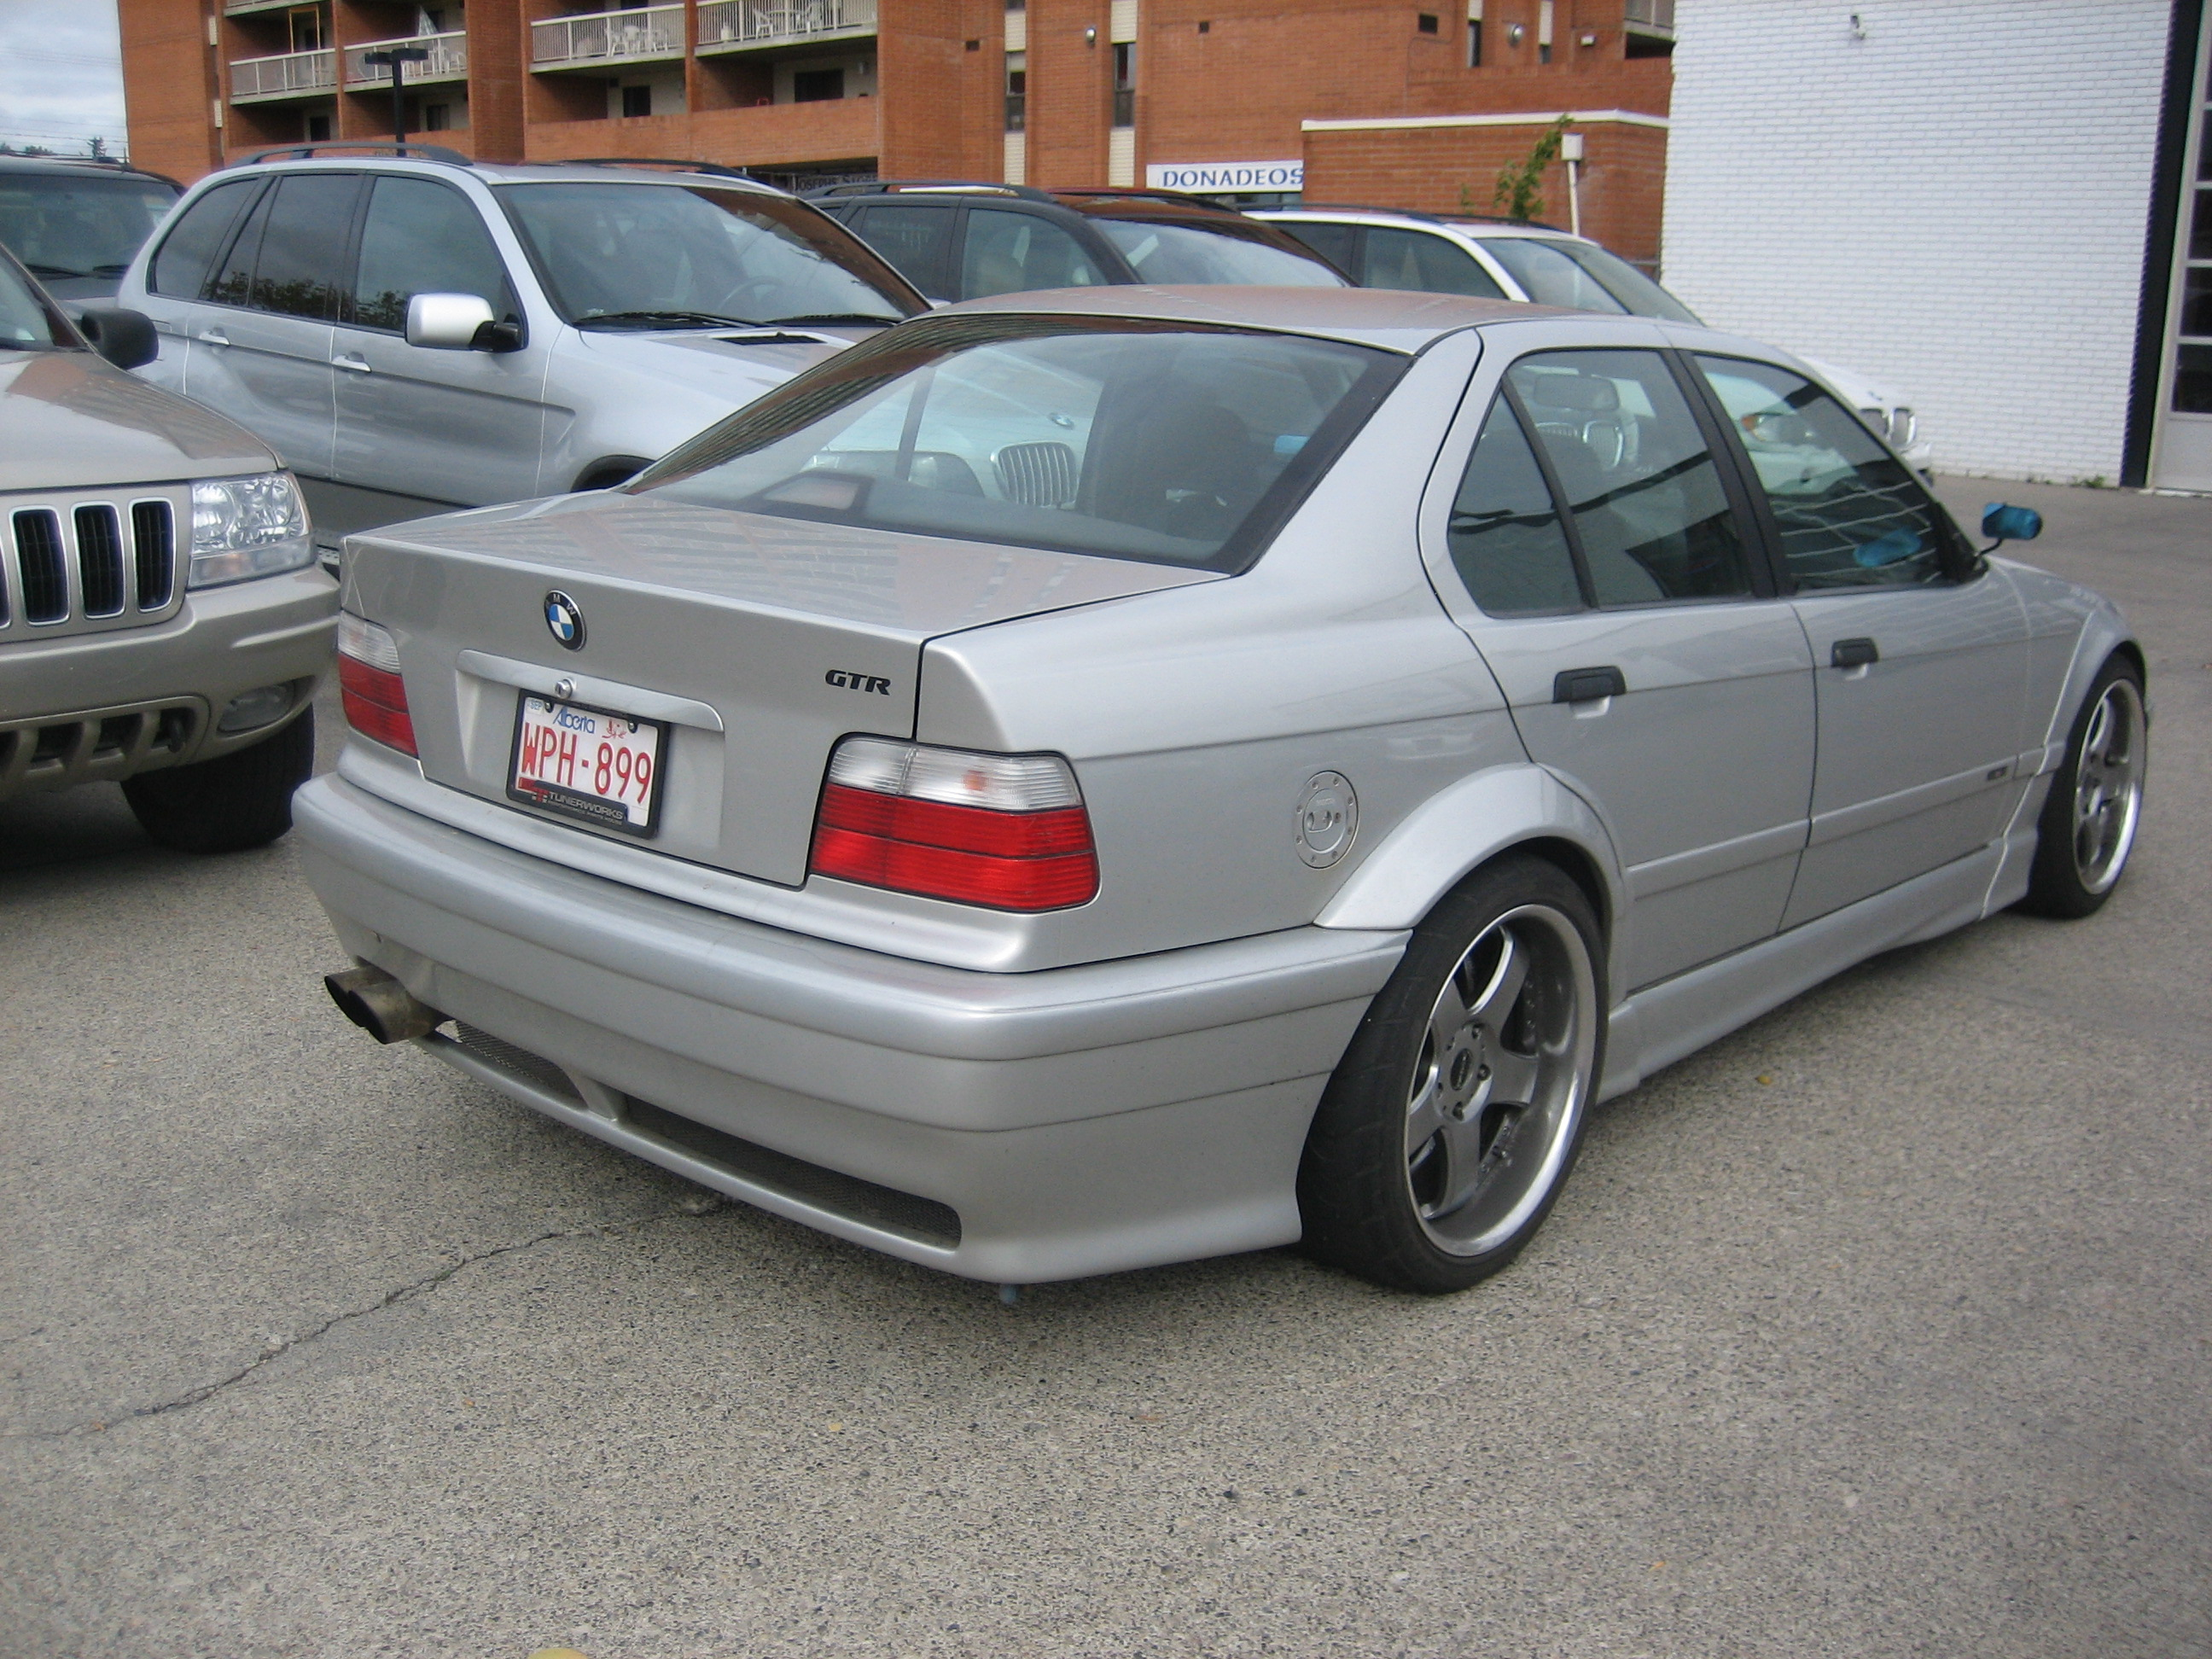 BMW 3 series 316 1992 photo - 4